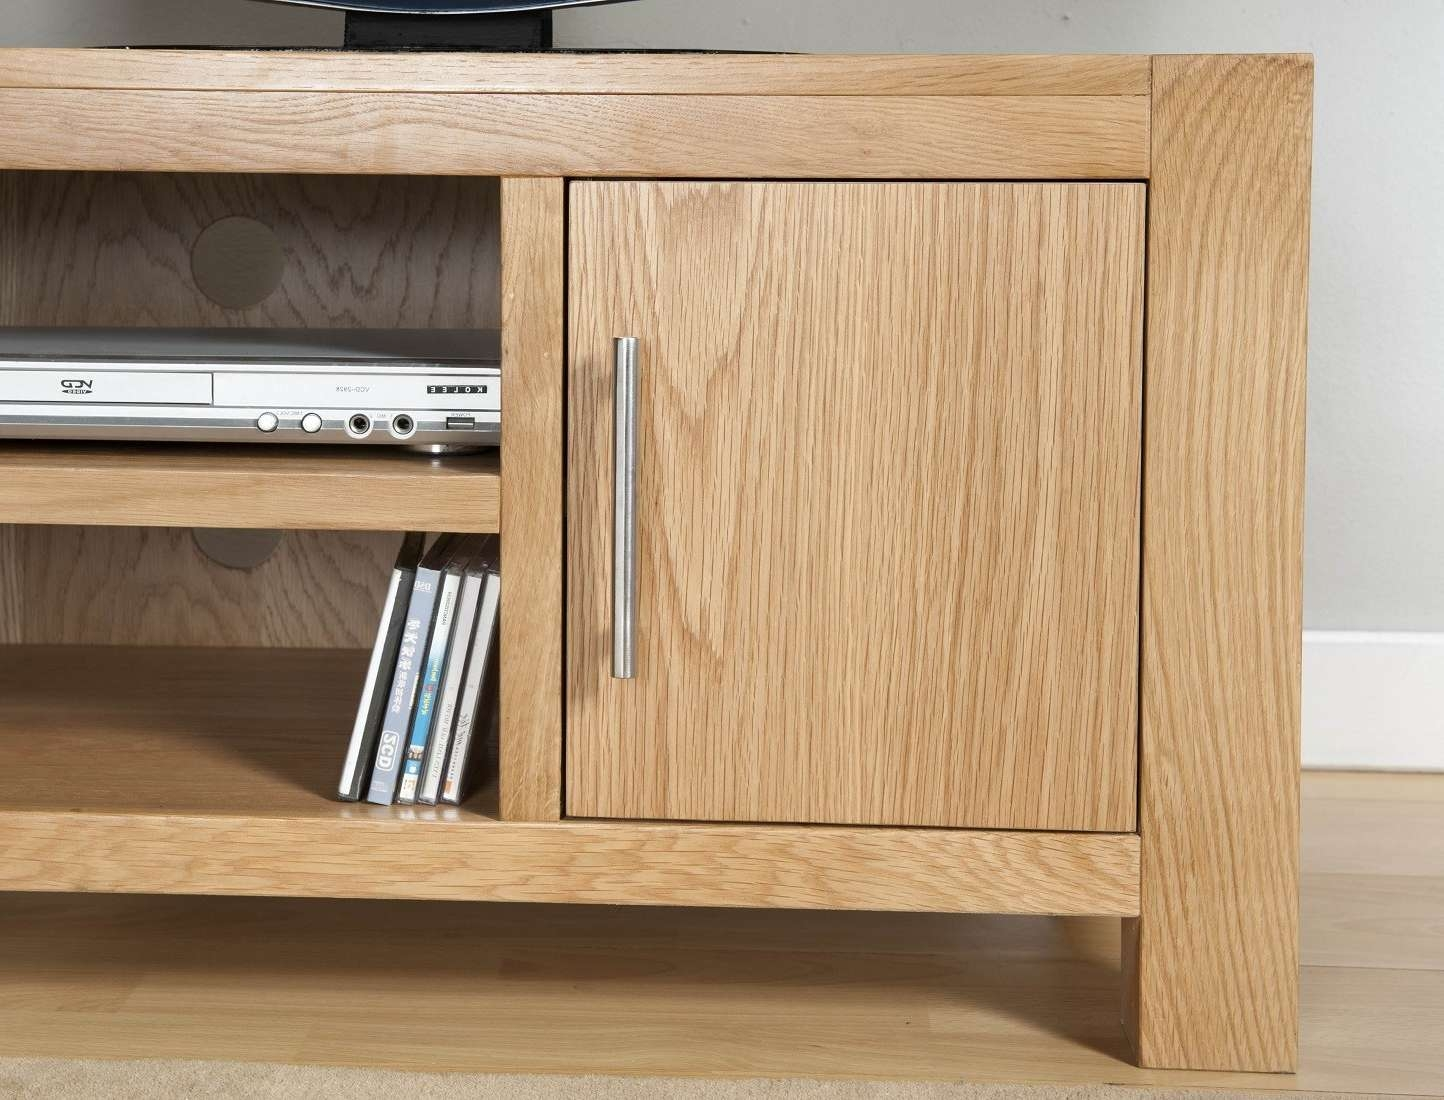 Aylesbury Contemporary Light Oak Small Tv Unit | Oak Furniture Uk With Regard To Light Oak Tv Cabinets (View 4 of 20)